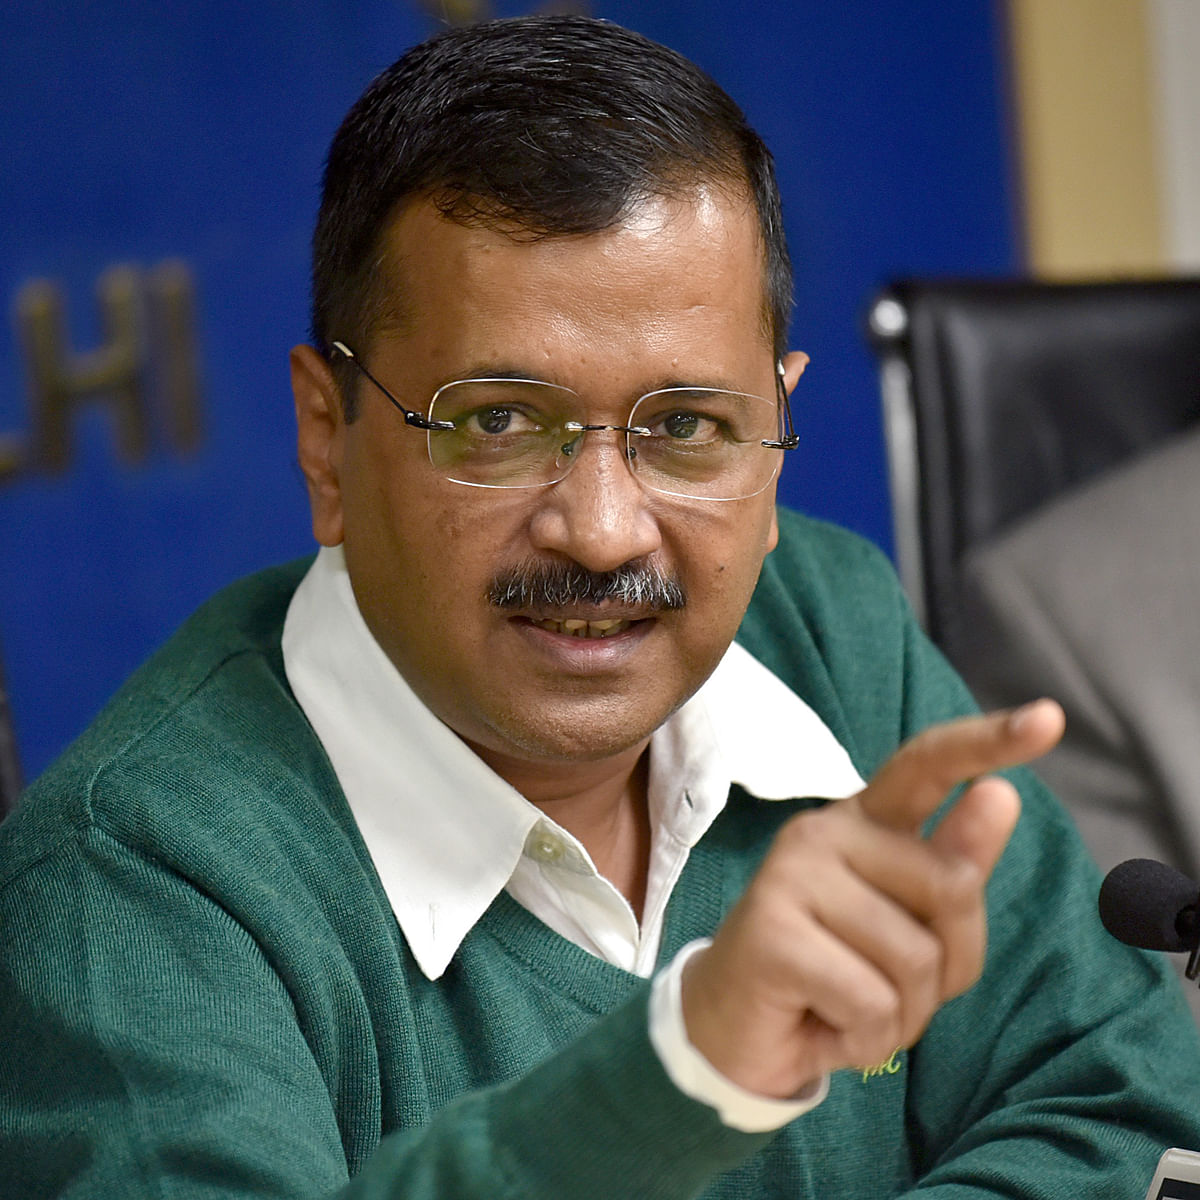 Delhi CAA protests: Kejriwal appeals for peace, BJP blames 'AAP traitors' for violence